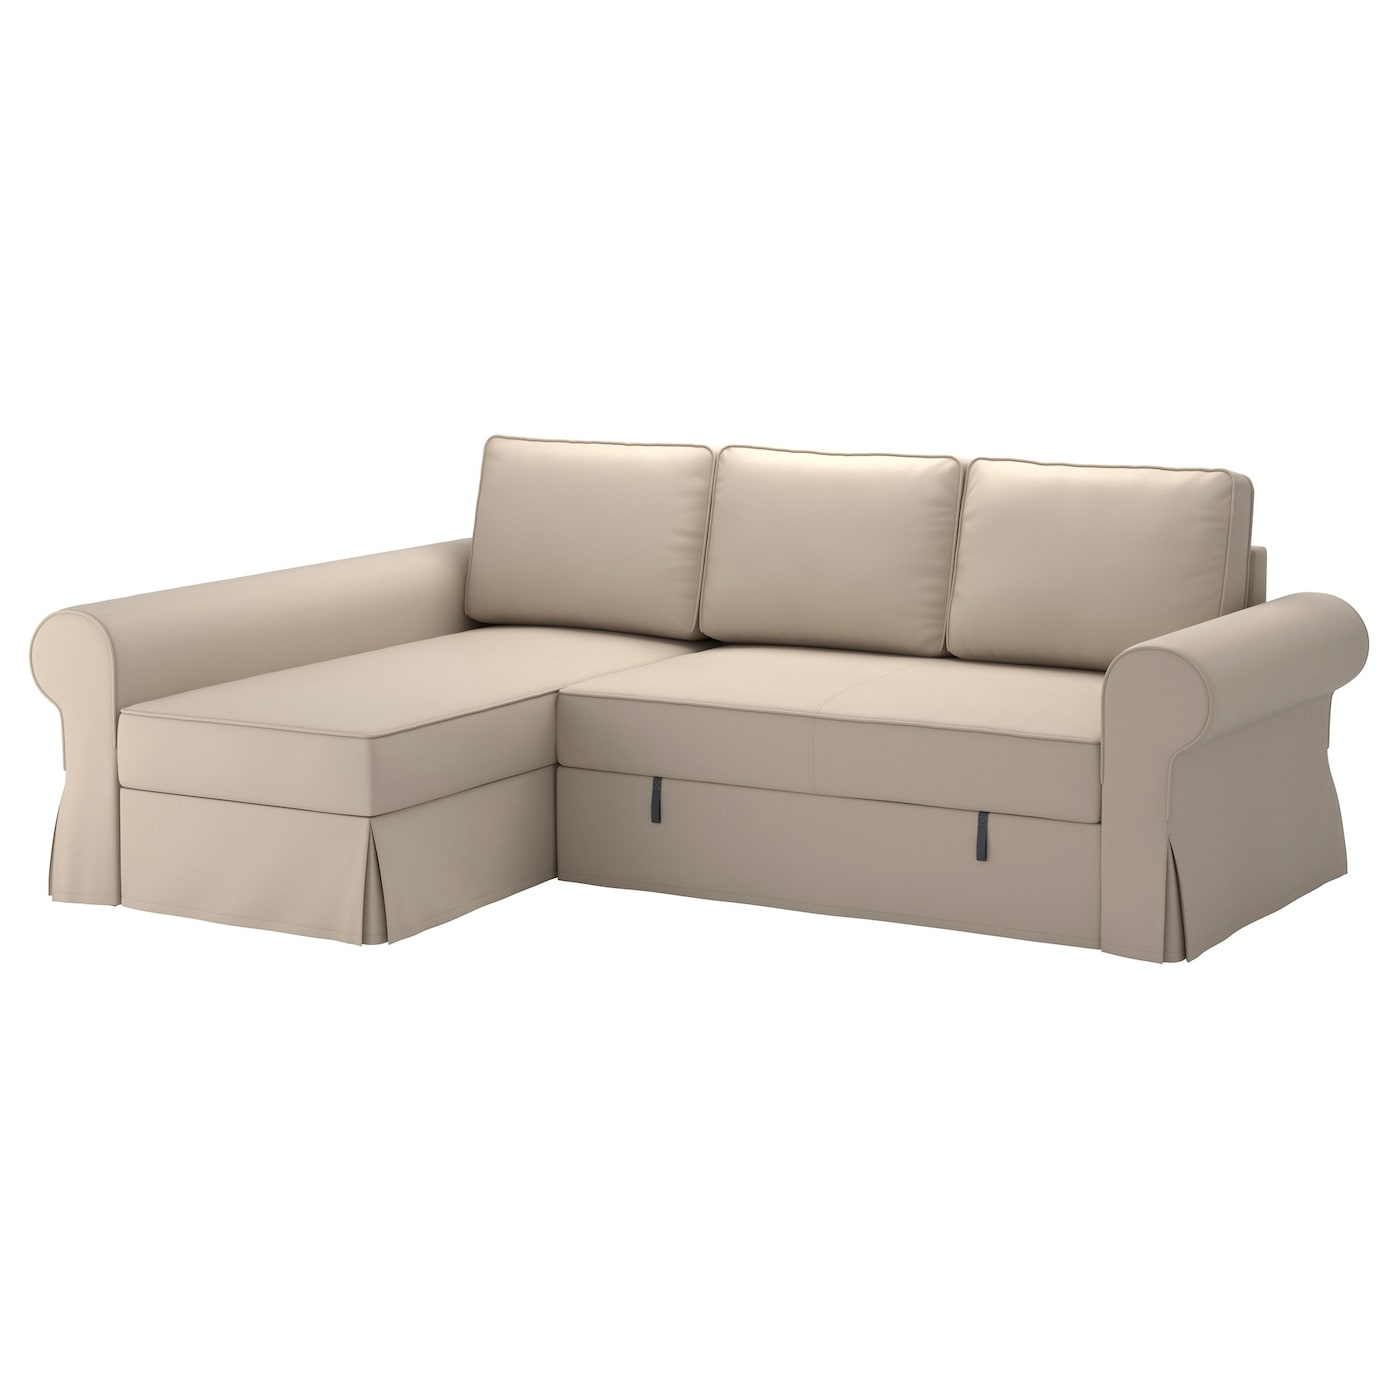 Backabro sofa bed with chaise longue ramna beige ikea - Chaise longue sofa bed ...